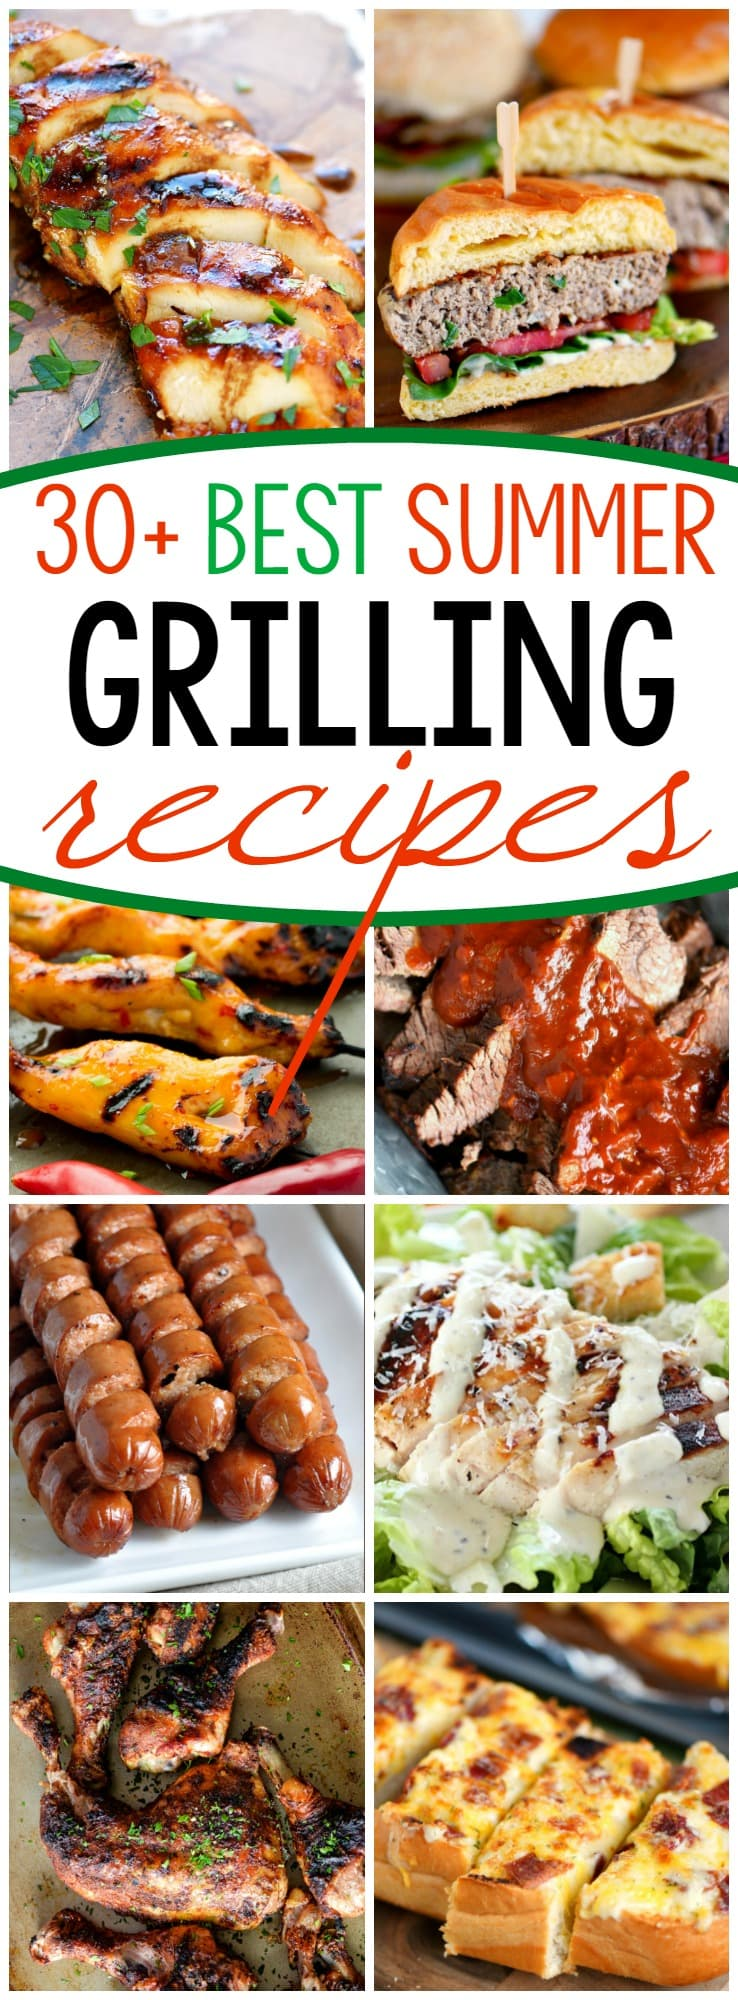 It's too hot to cook indoors! Fire up that grill and try one of these 31 Grilling Recipes for Summer! Your air conditioning bill will thank you.